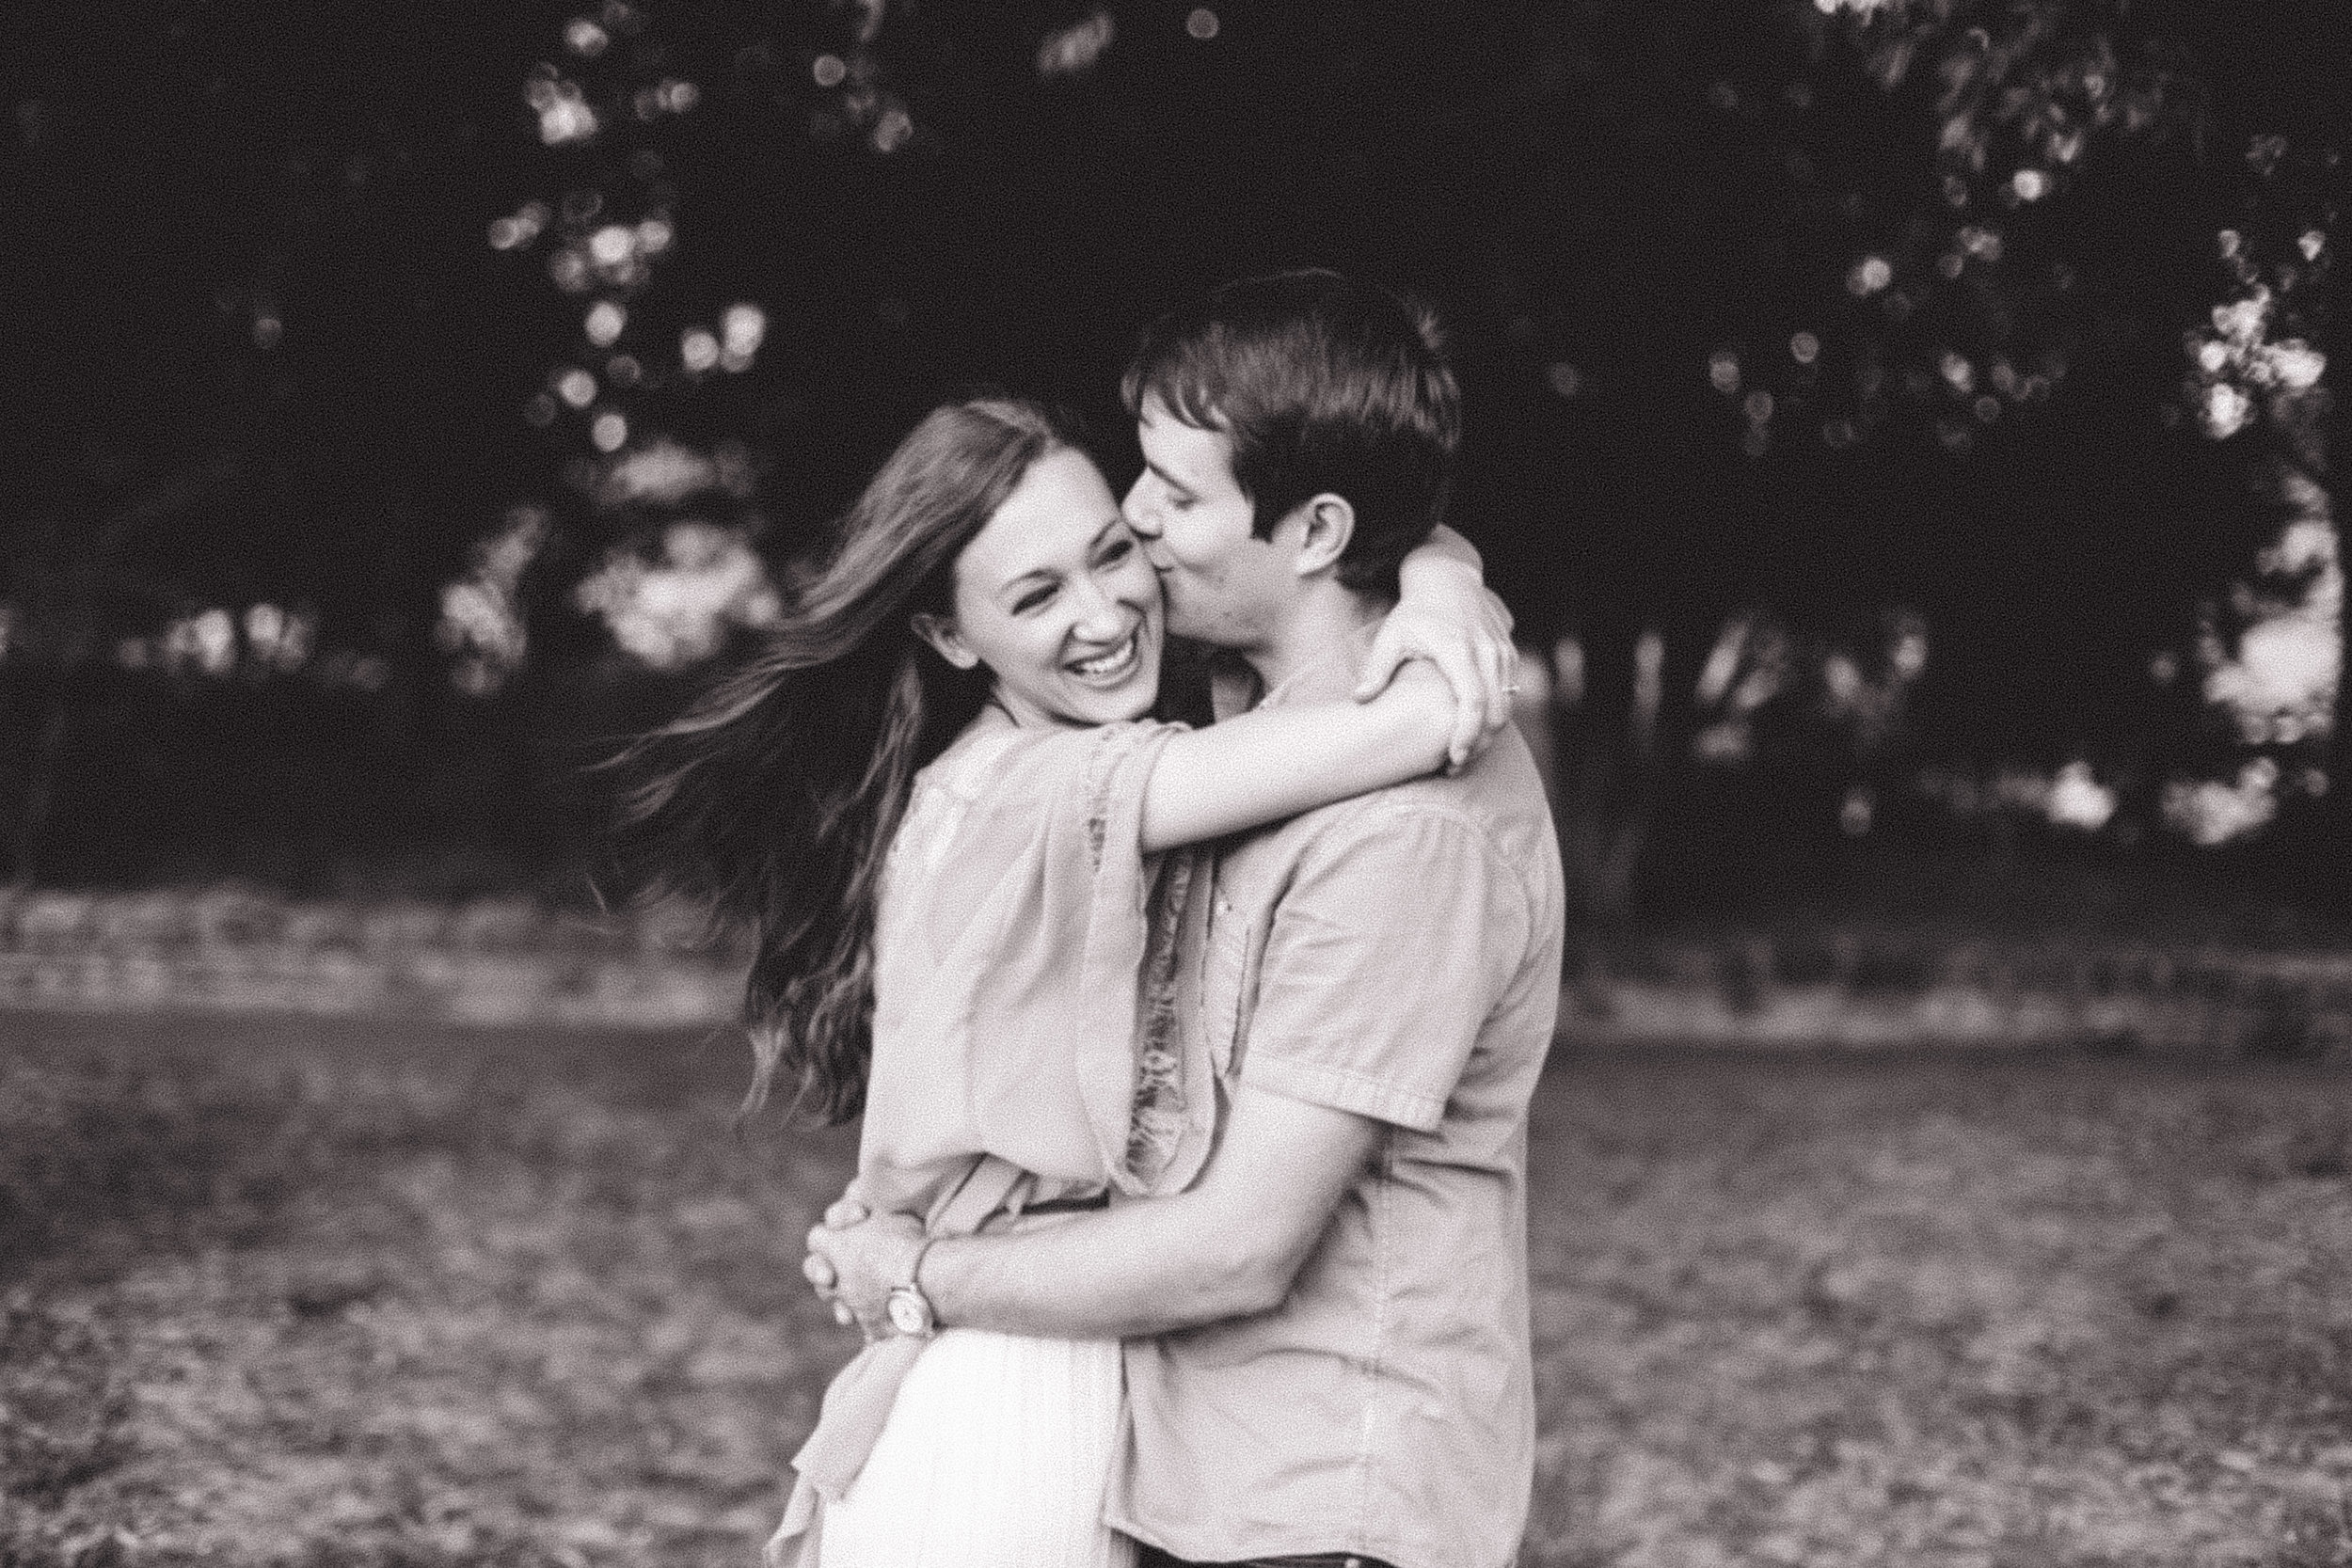 best engagement photographer nashville tn artist/musicians emily anne photography